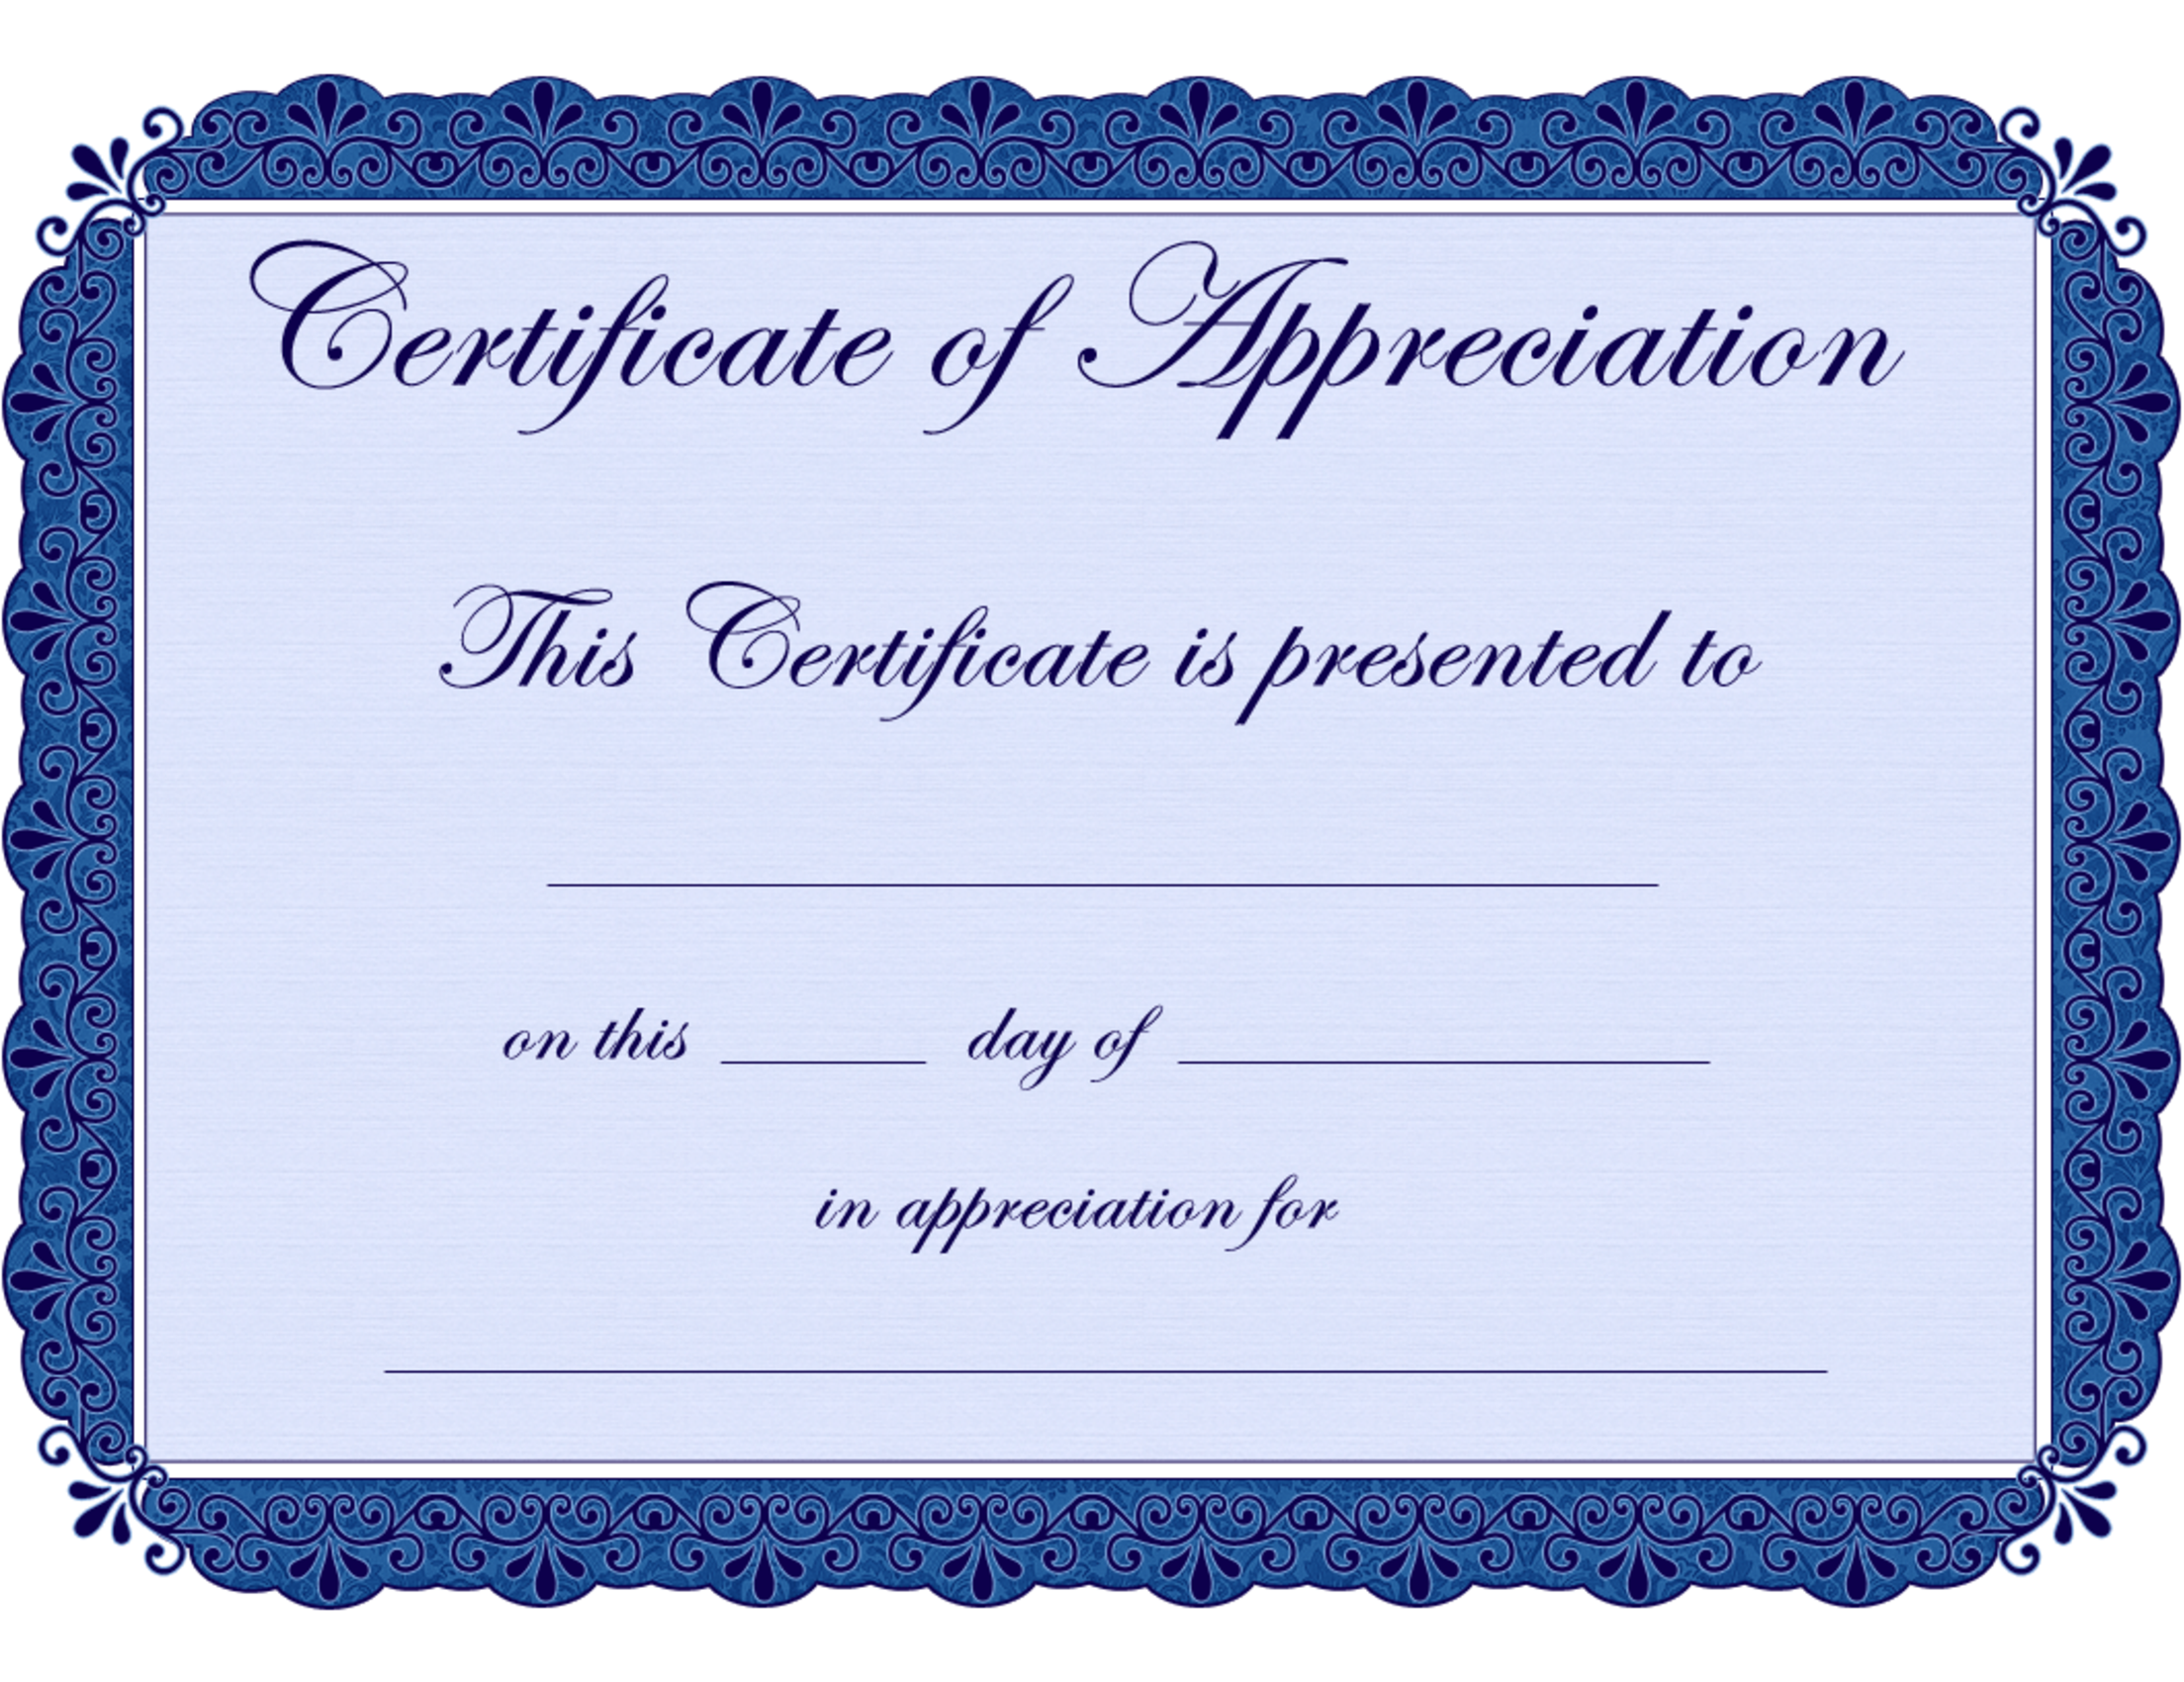 Free printable certificates certificate of appreciation free printable certificates certificate of appreciation certificate yadclub Choice Image